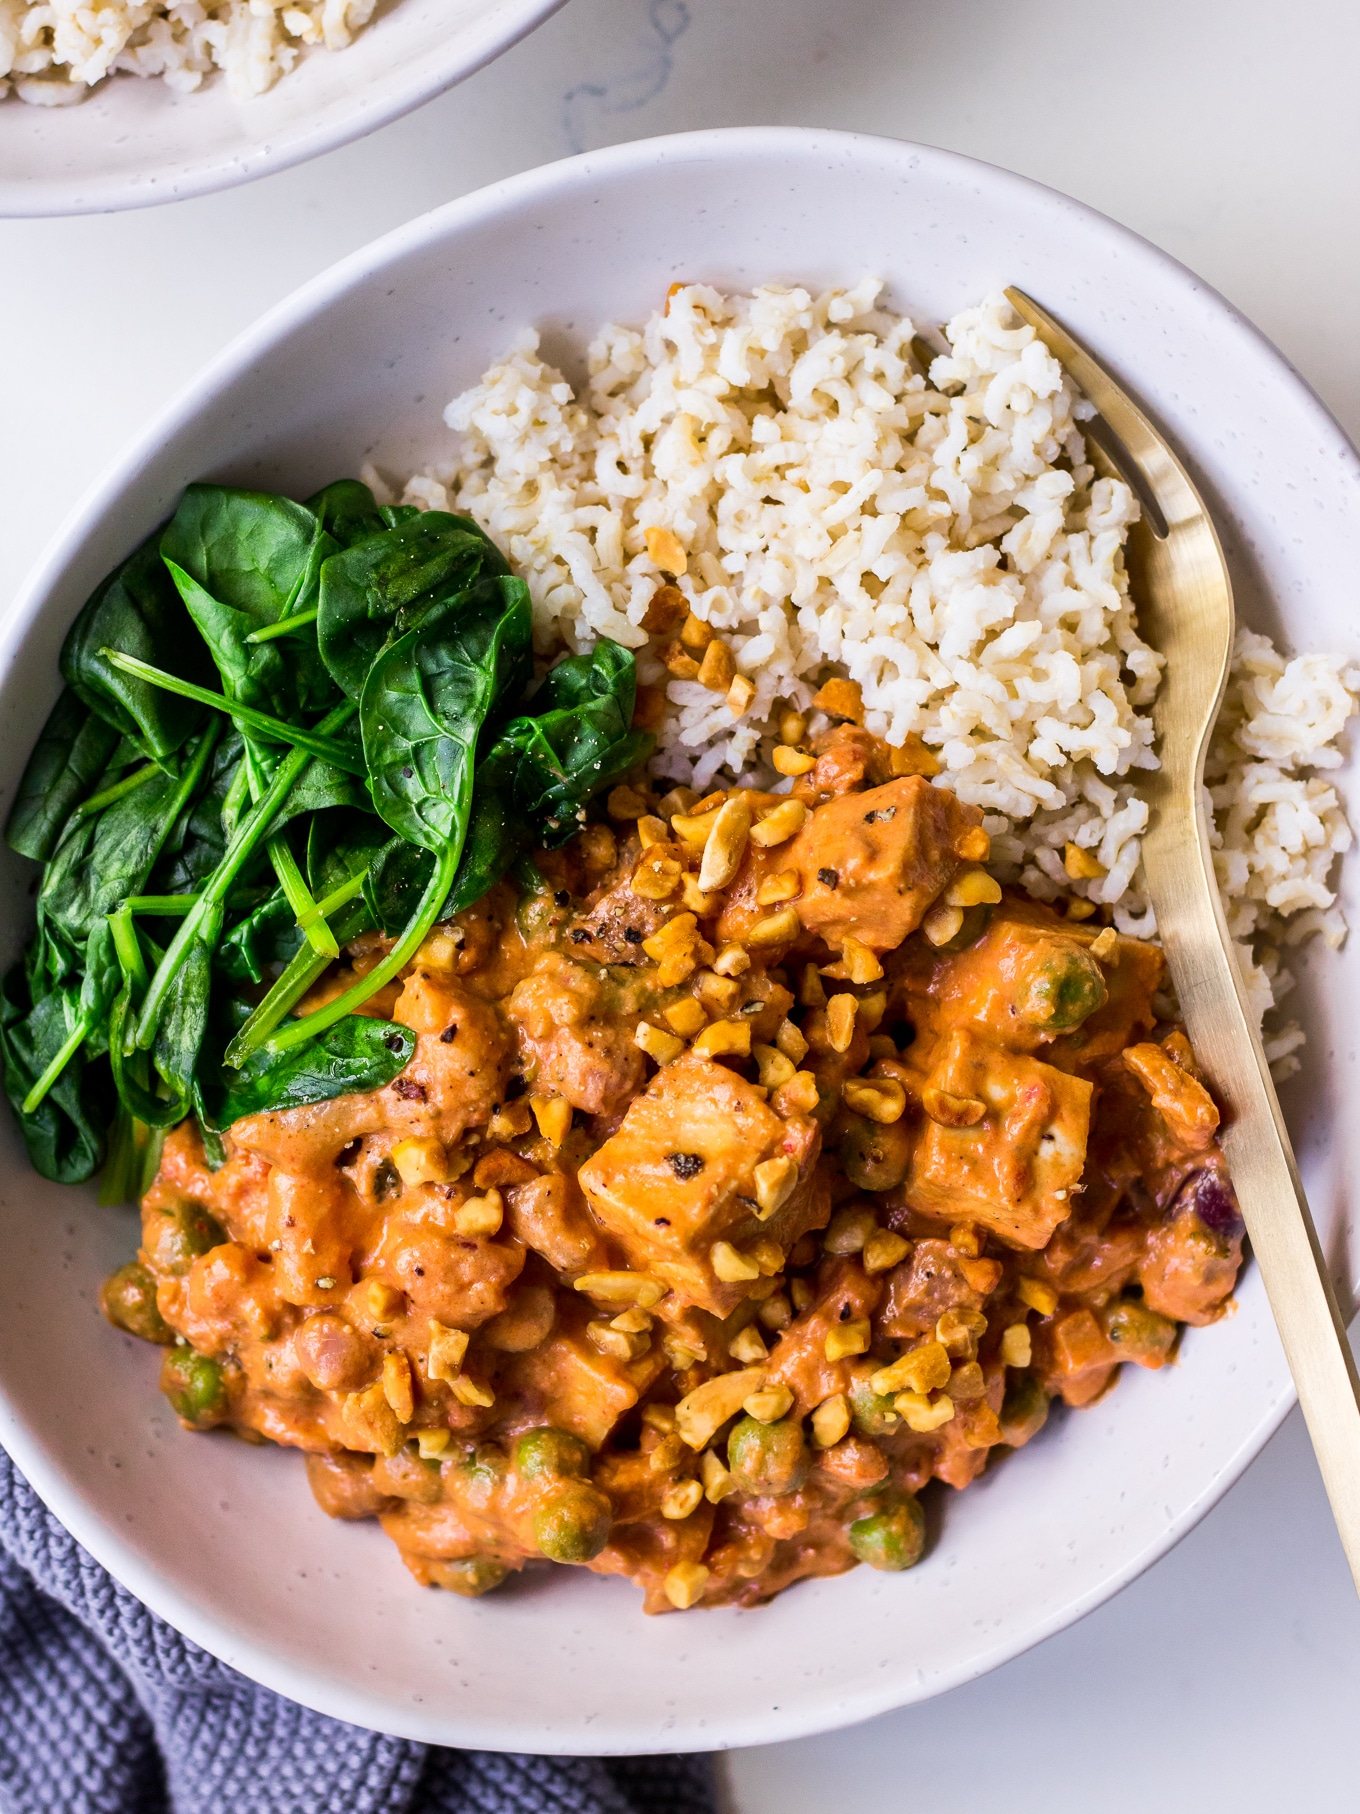 Bowl with peanut tofu curry, spinach and brown rice